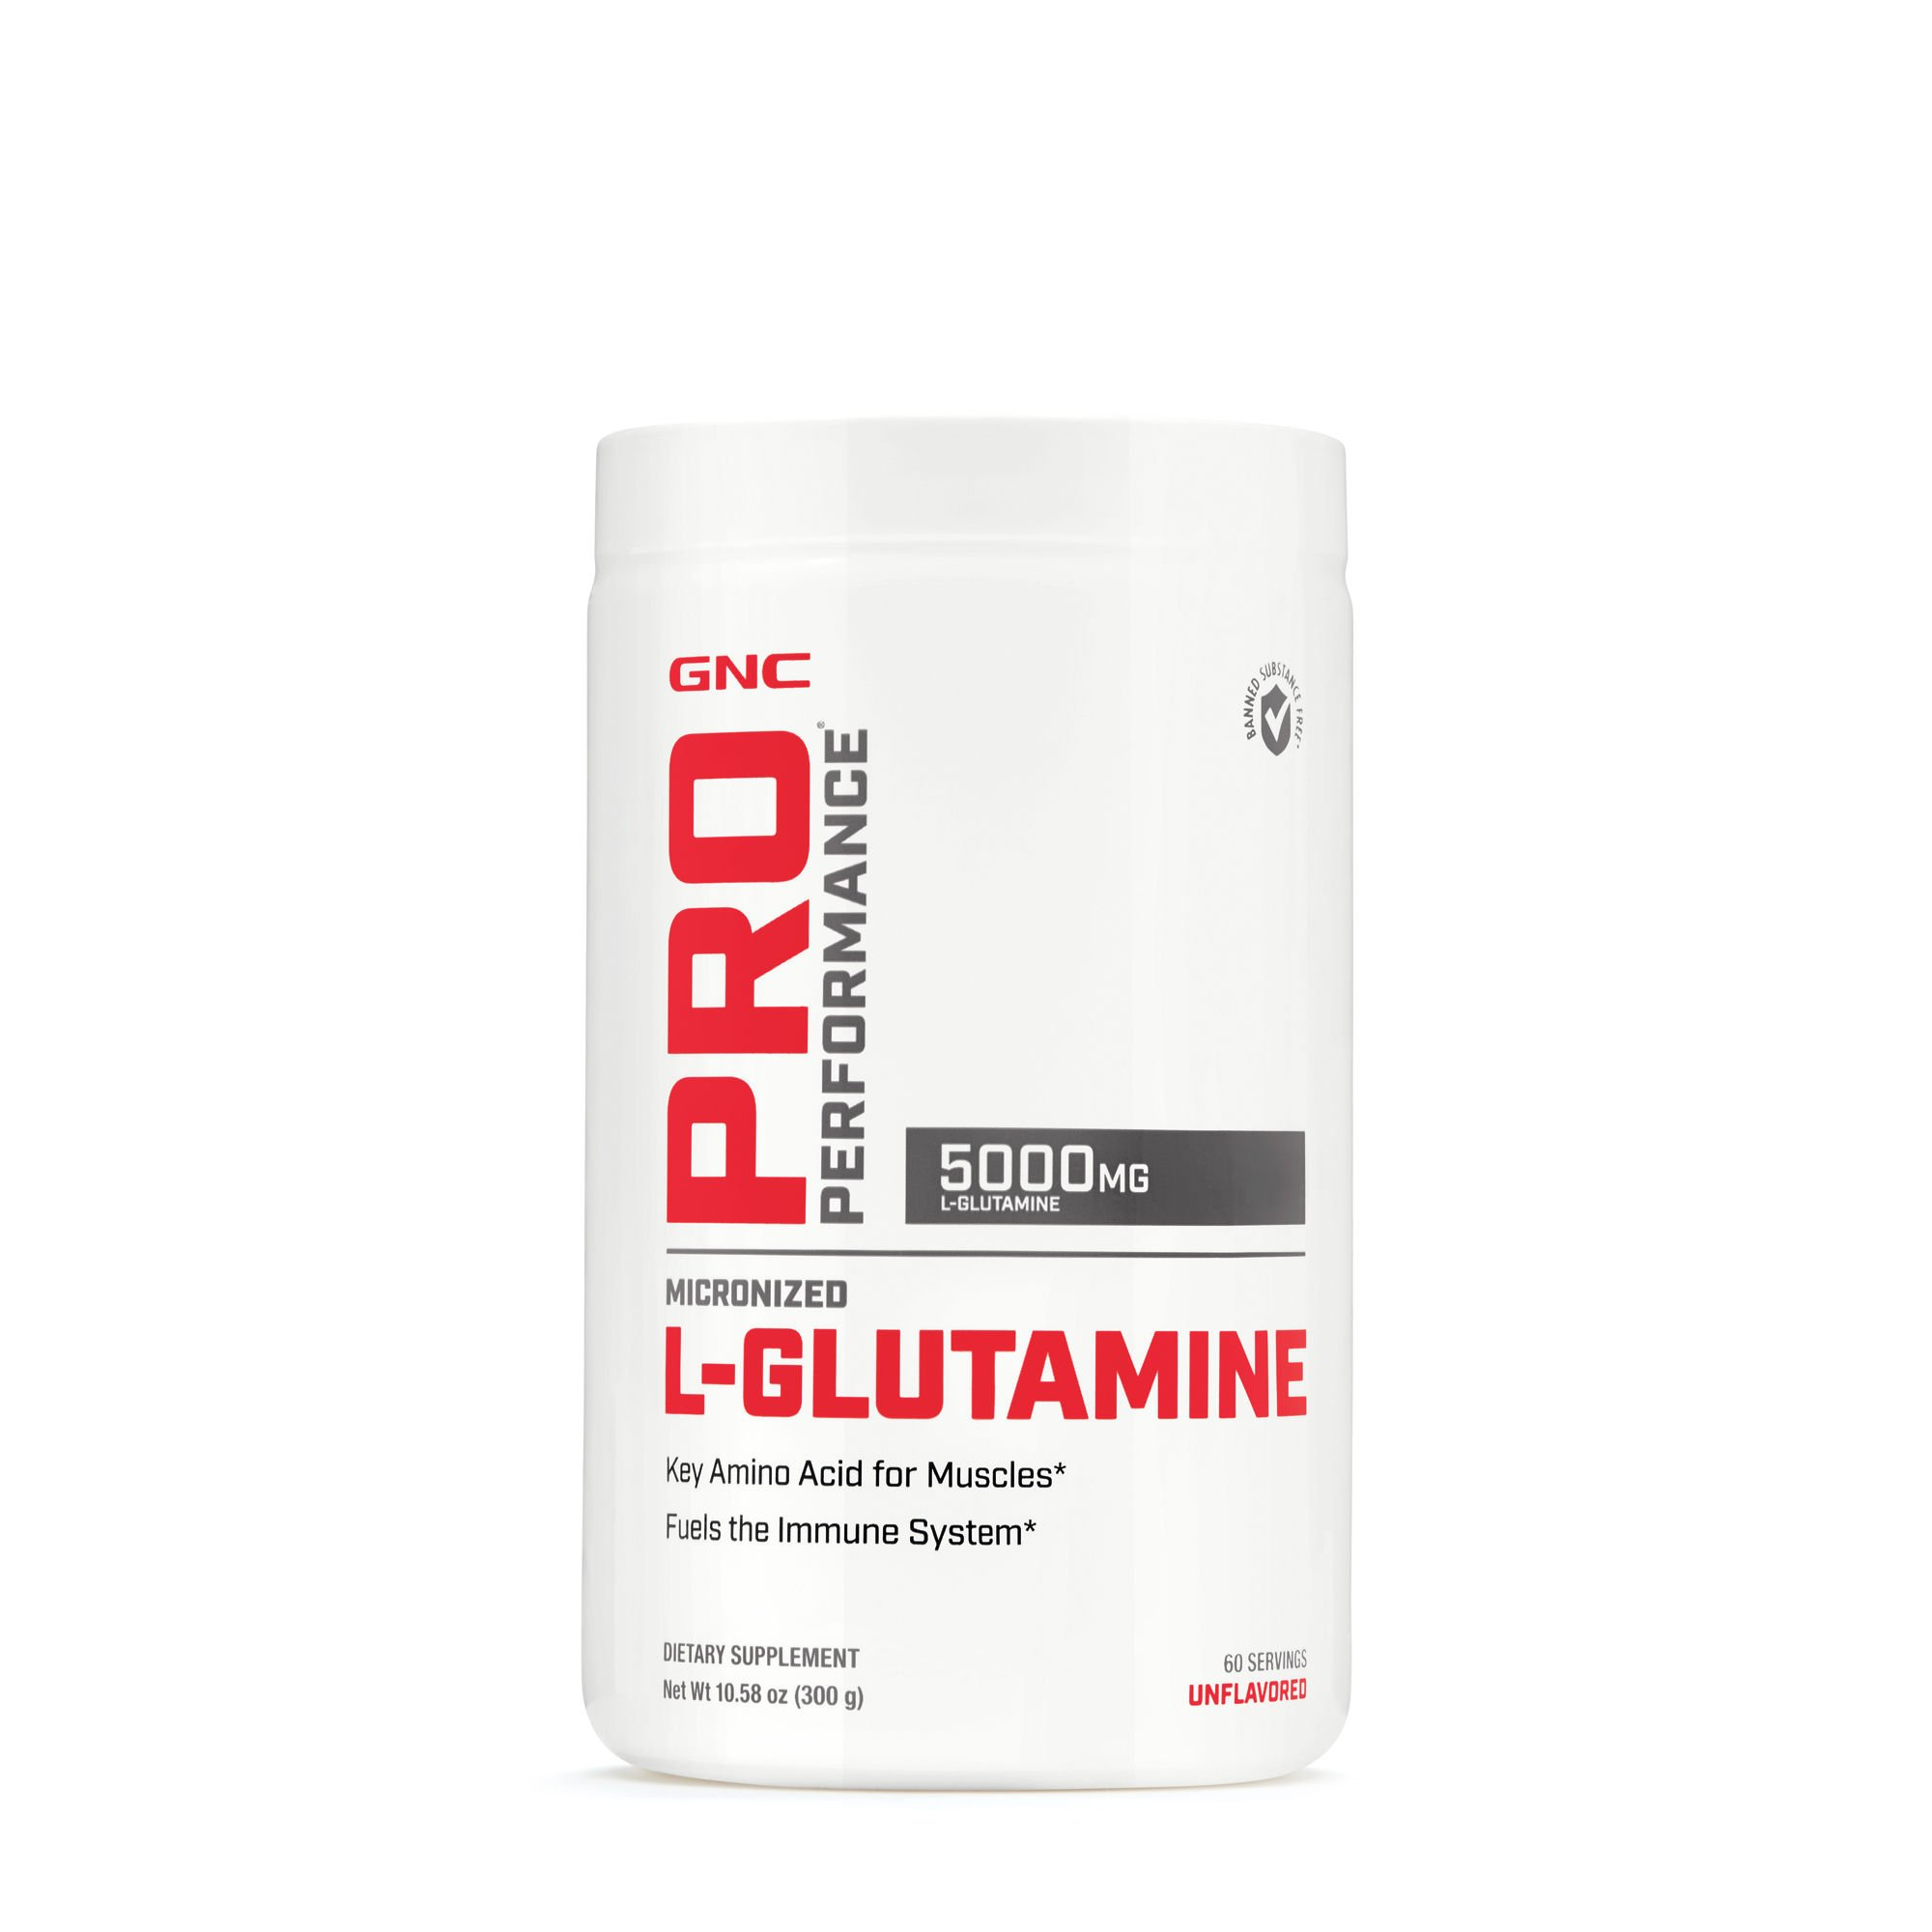 GNC Pro Performance Micronized L-Glutamine, Unflavored, 60 Servings, Supports The Immune System